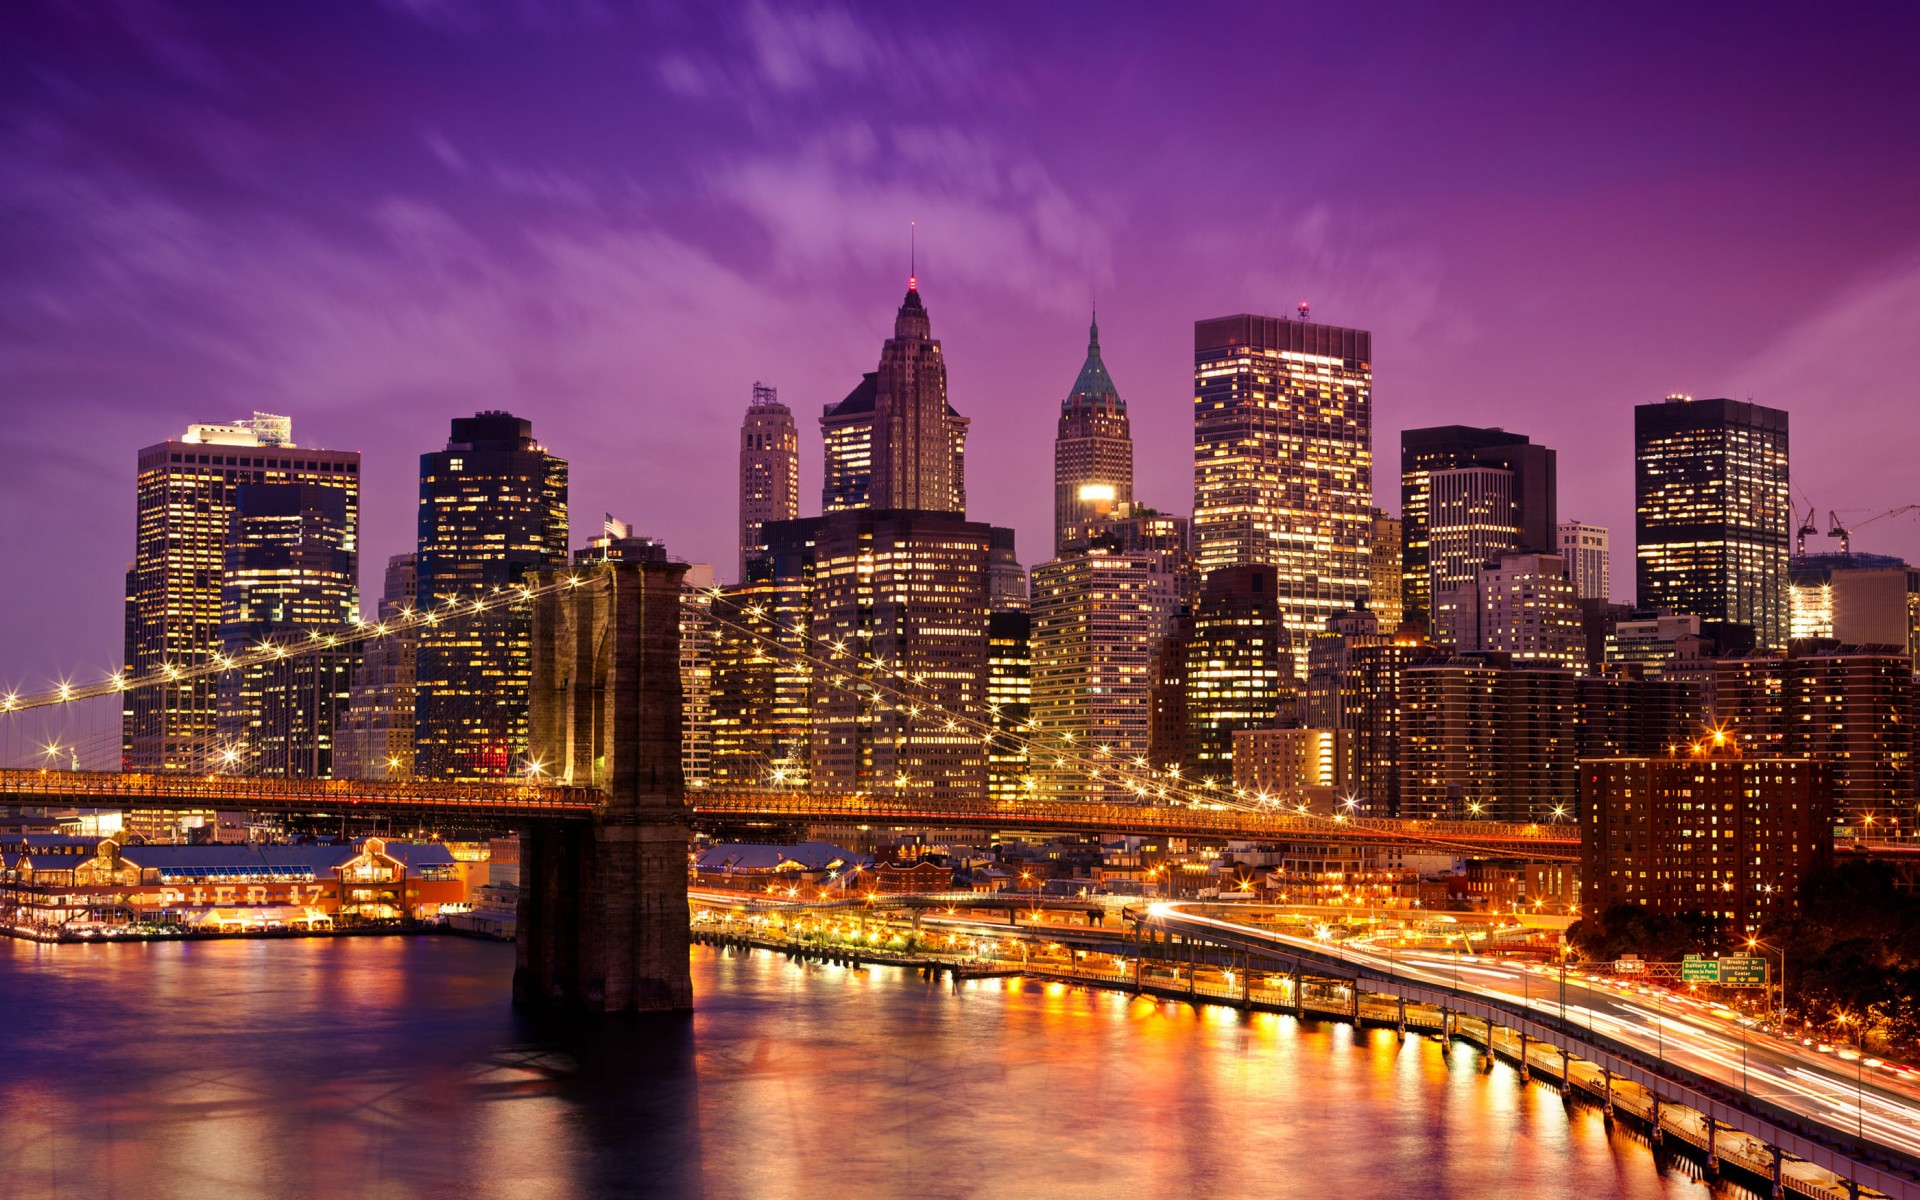 Best 25 New York City Wallpapers For Desktop On Hipwallpaper Beautiful Widescreen Desktop Wallpaper Desktop Wallpaper And Naruto Desktop Backgrounds